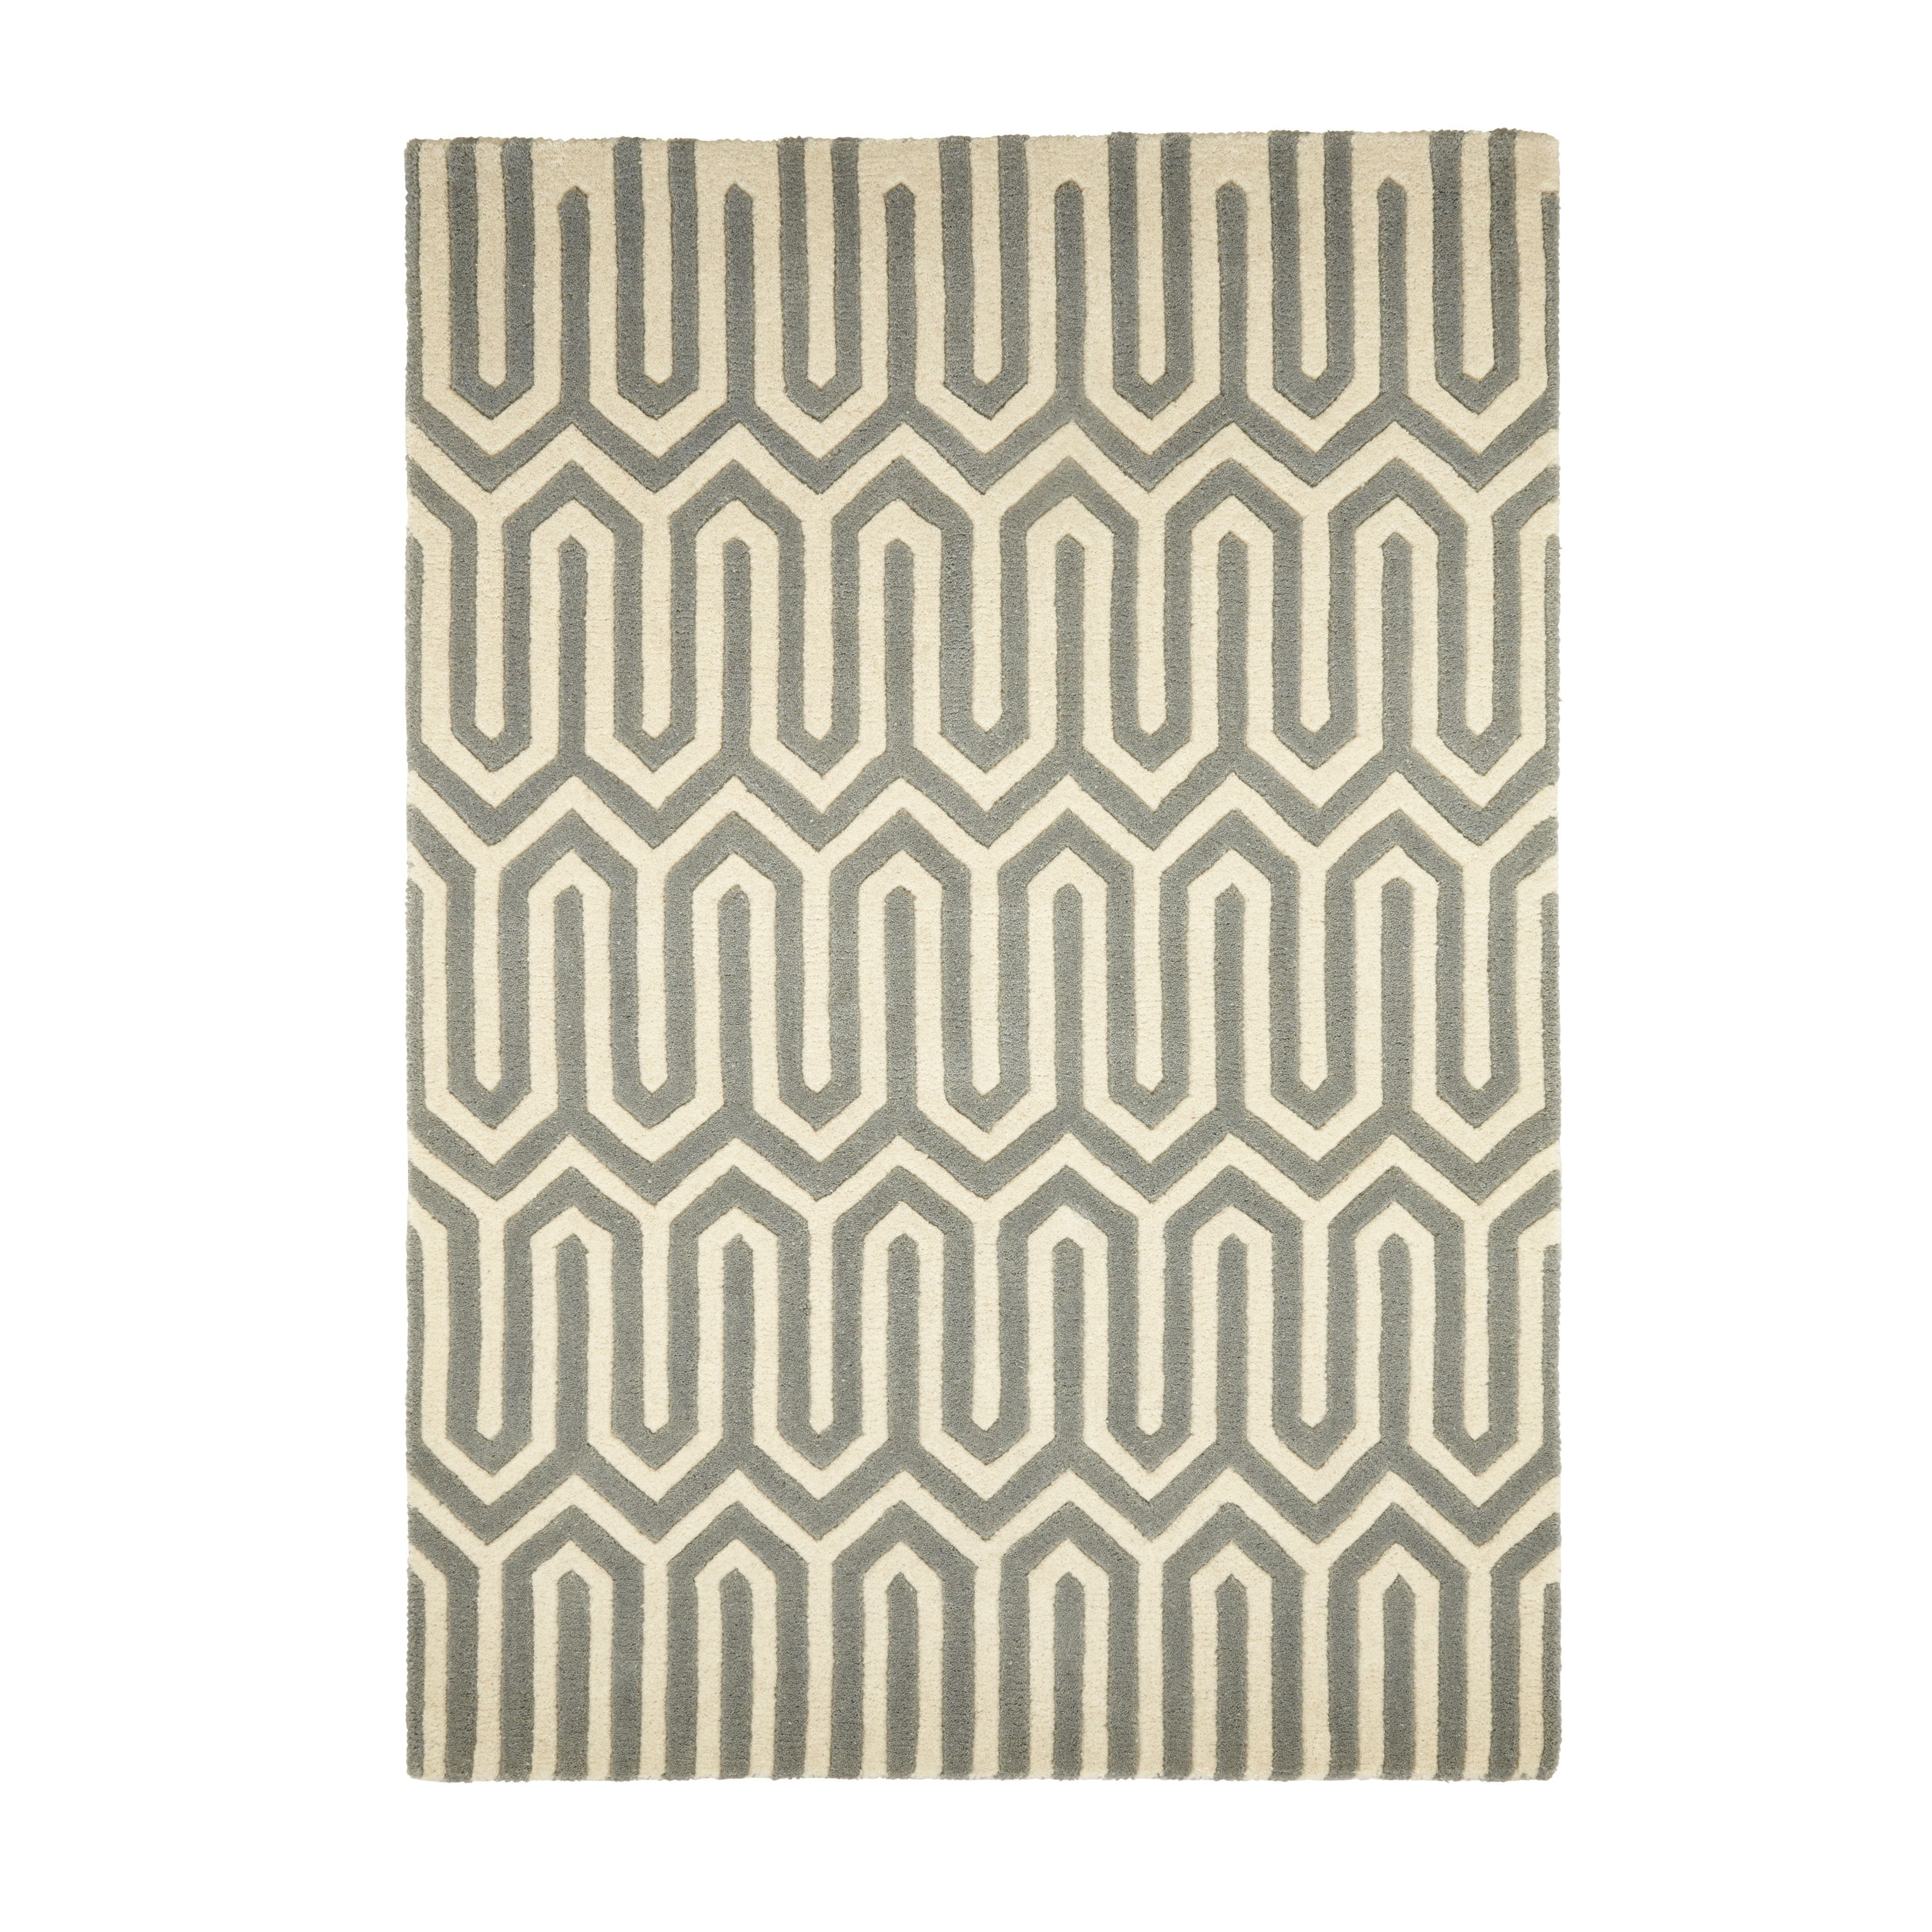 Colours Larissa Cream Grey Rug M B Q For All Your Home And Garden Supplies Advice On The Latest Diy Trends